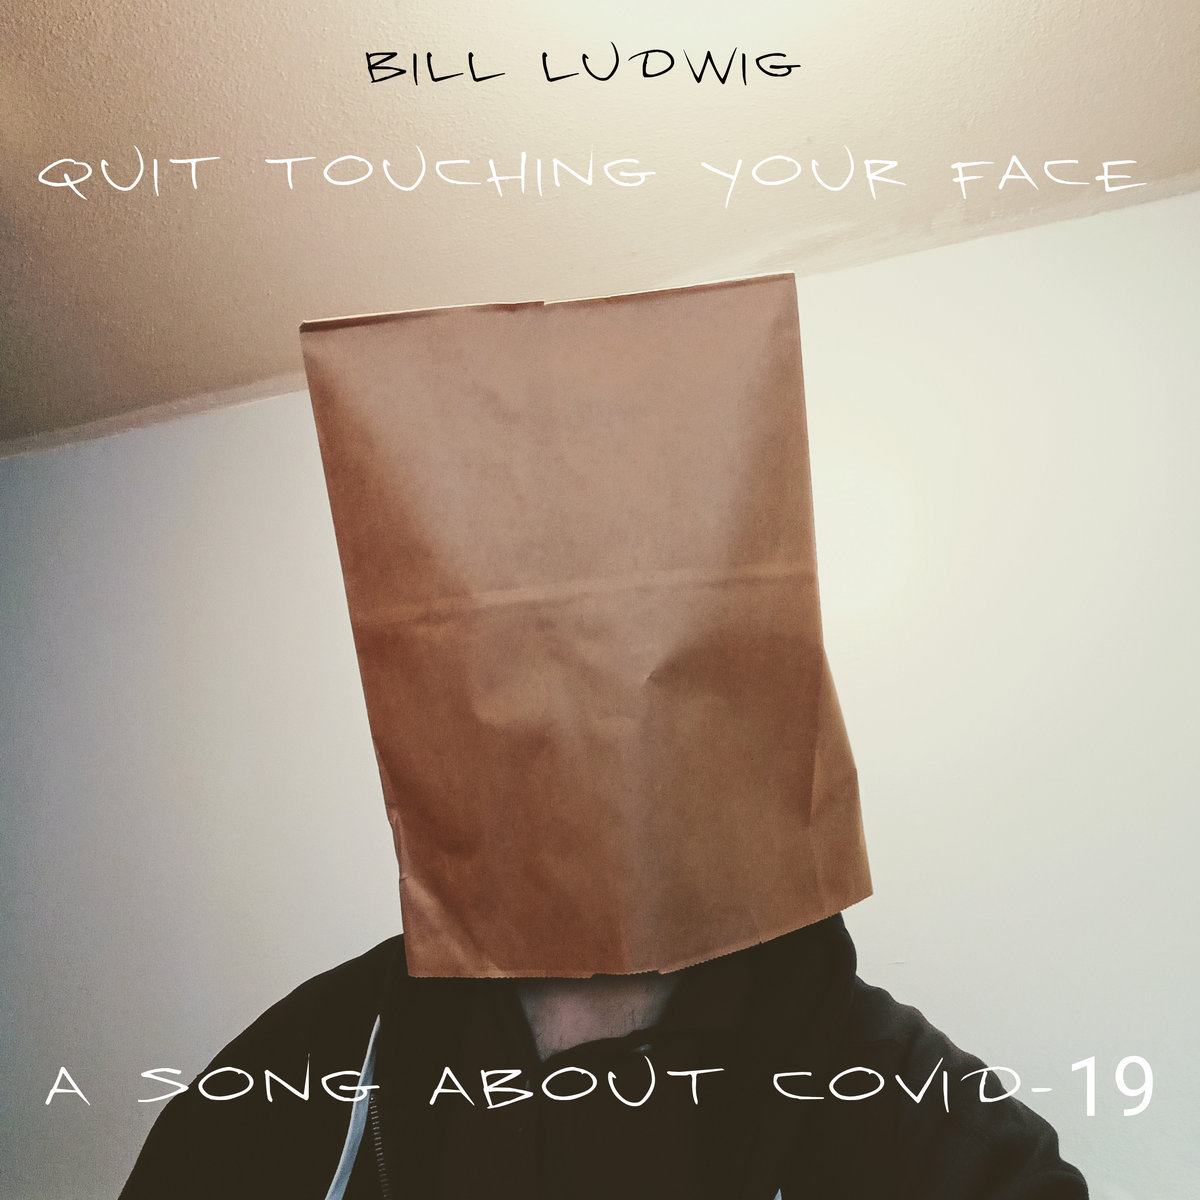 Quit Touching Your Face (CORONAVIRUS) by Bill Ludwig